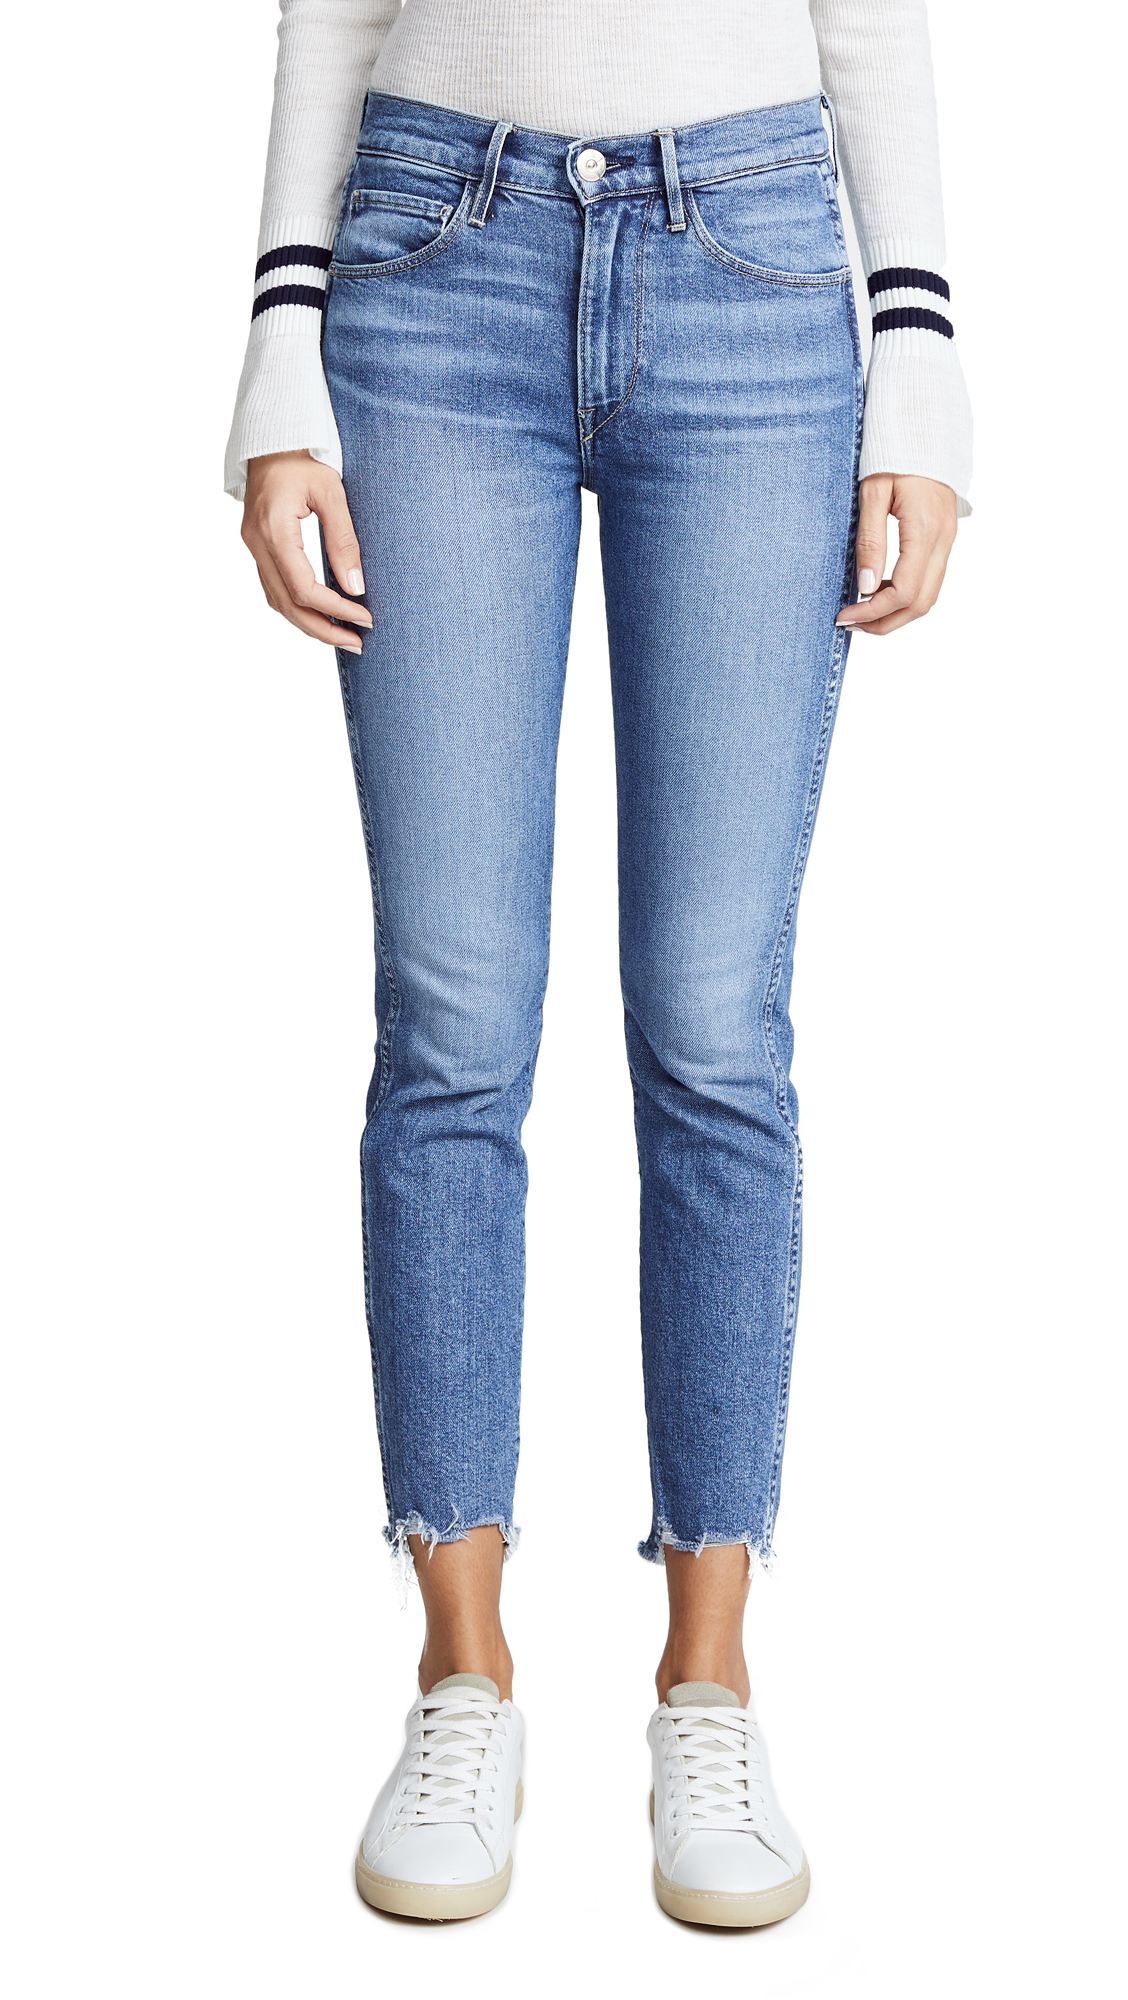 3x1 W3 Straight Authentic Crop Jeans - Ace